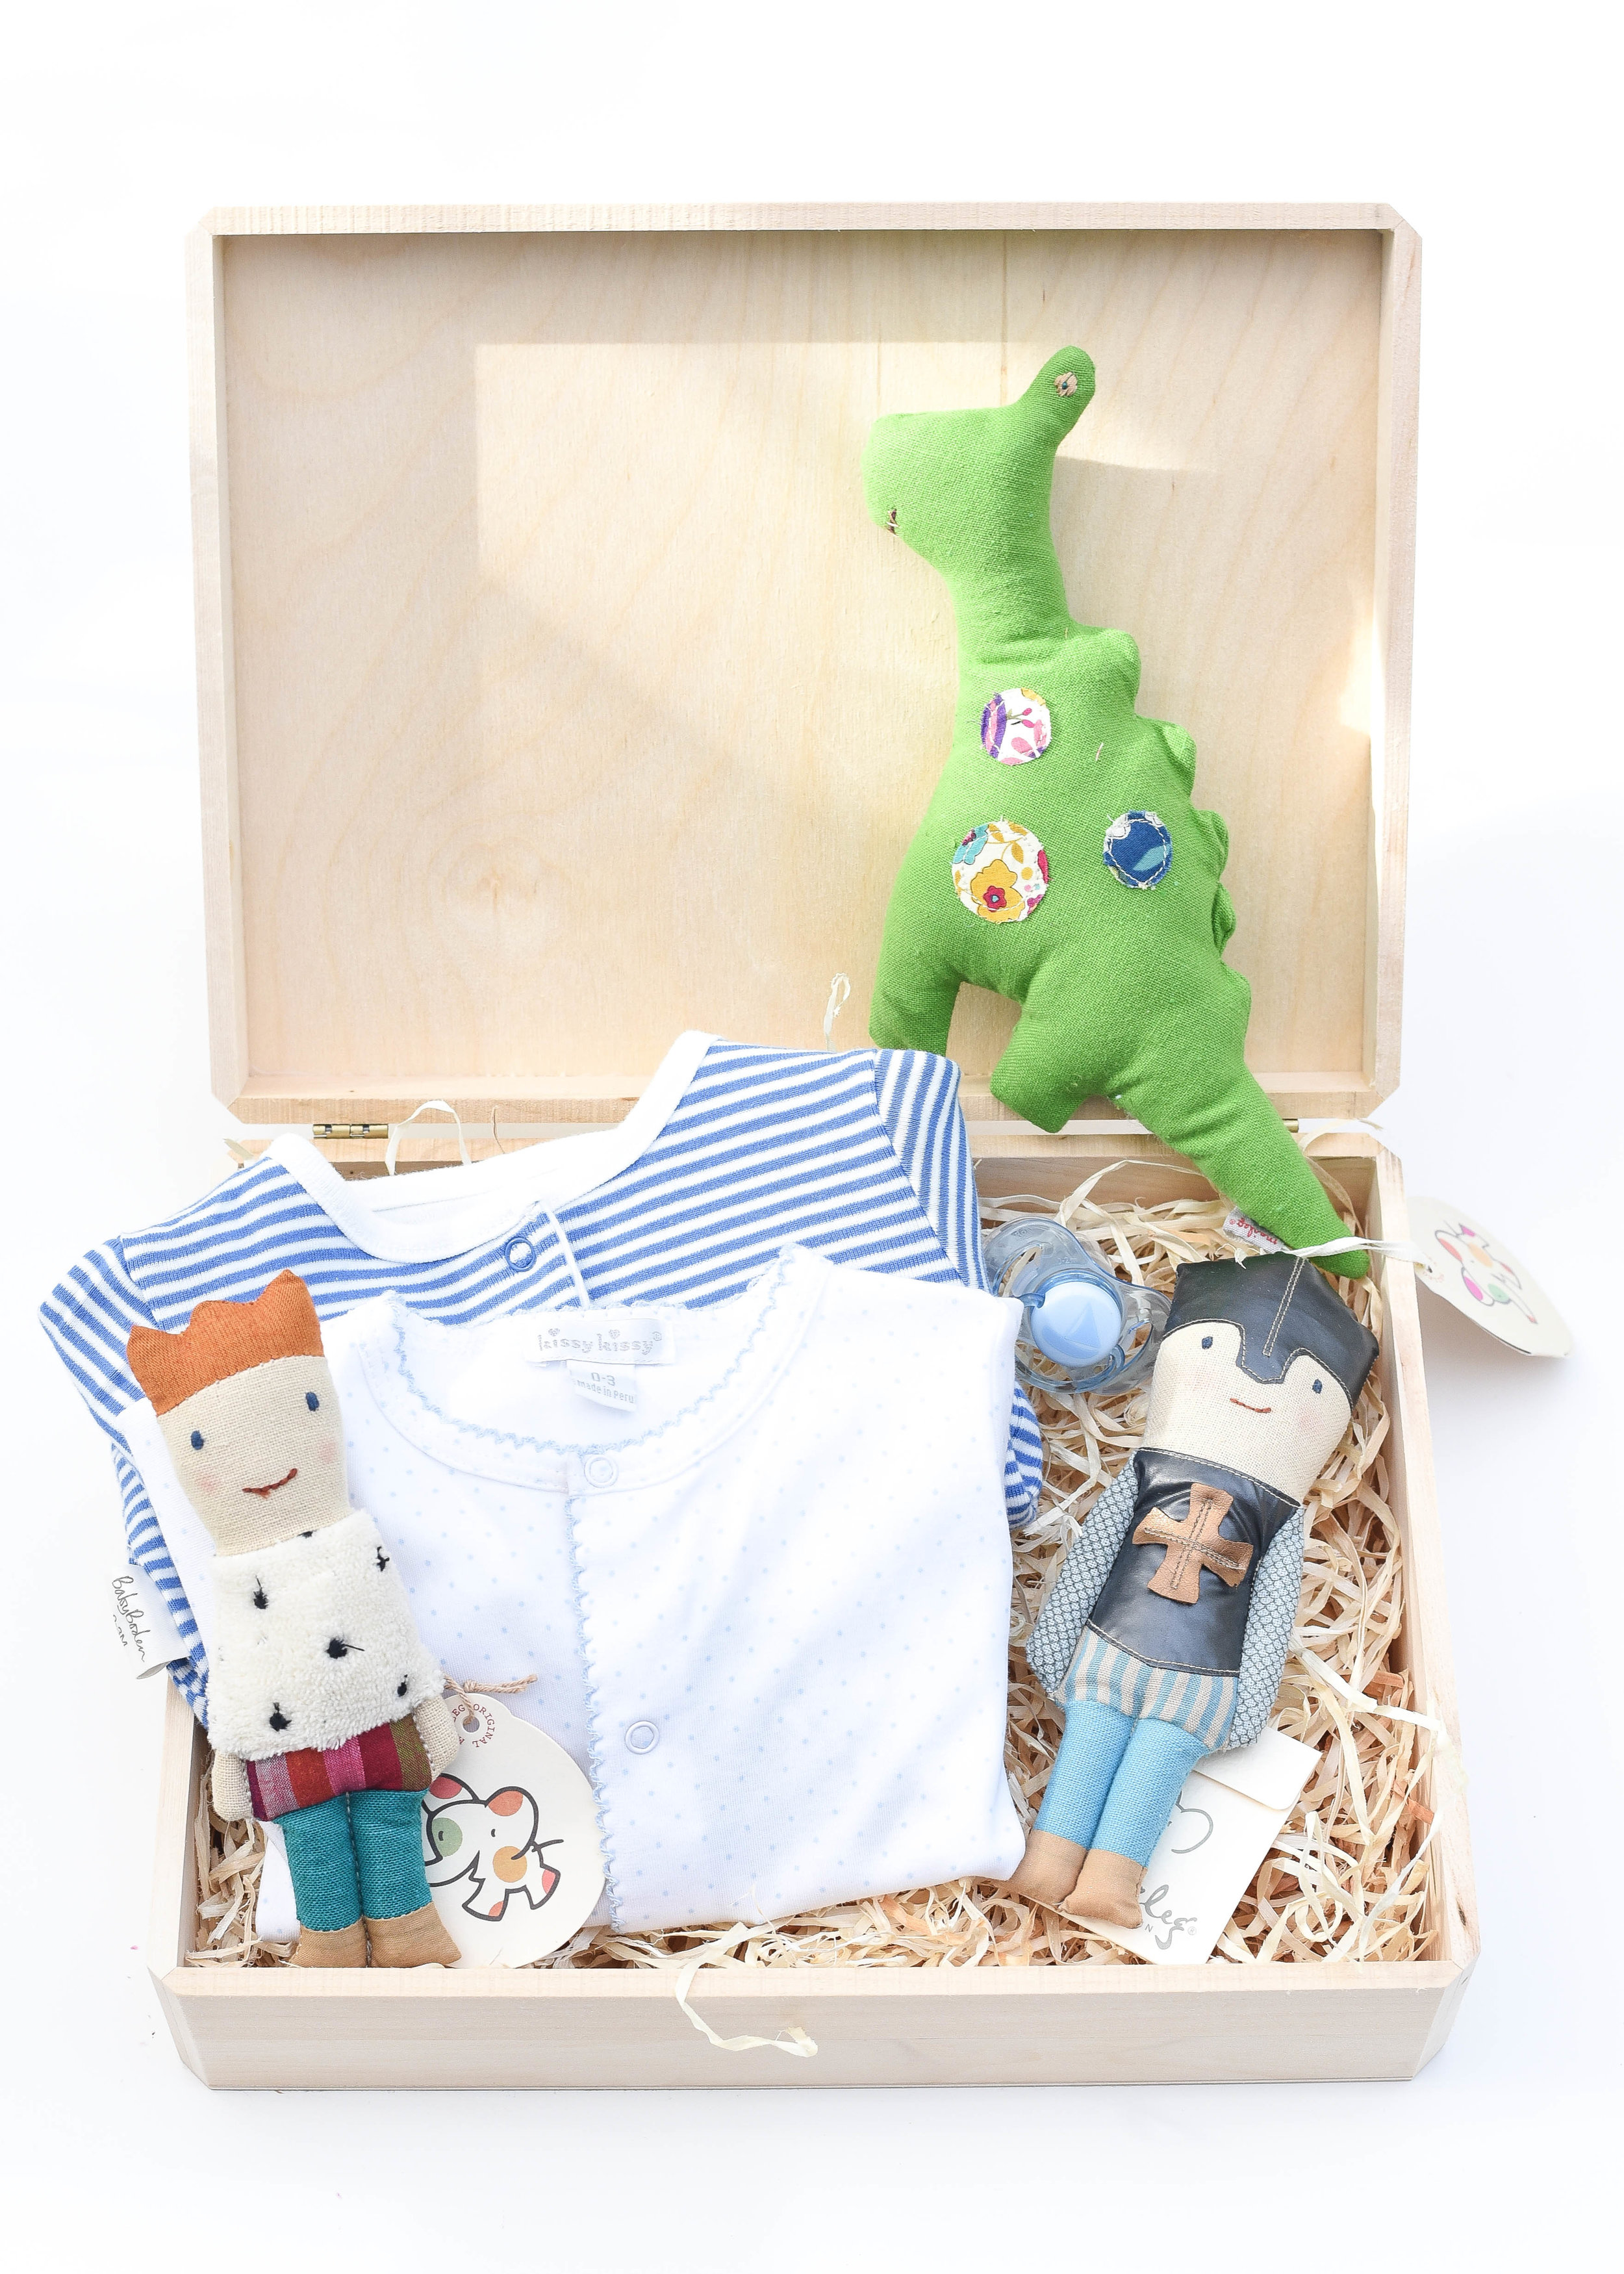 For Baby | Cozy Play Set - L:R | Prince Rattle | Reversible Stripe Cardigan | Pima Cotton Footed Playsuit | Dragon Rattle | Pacifier | Knight Rattle (can still be found here) |